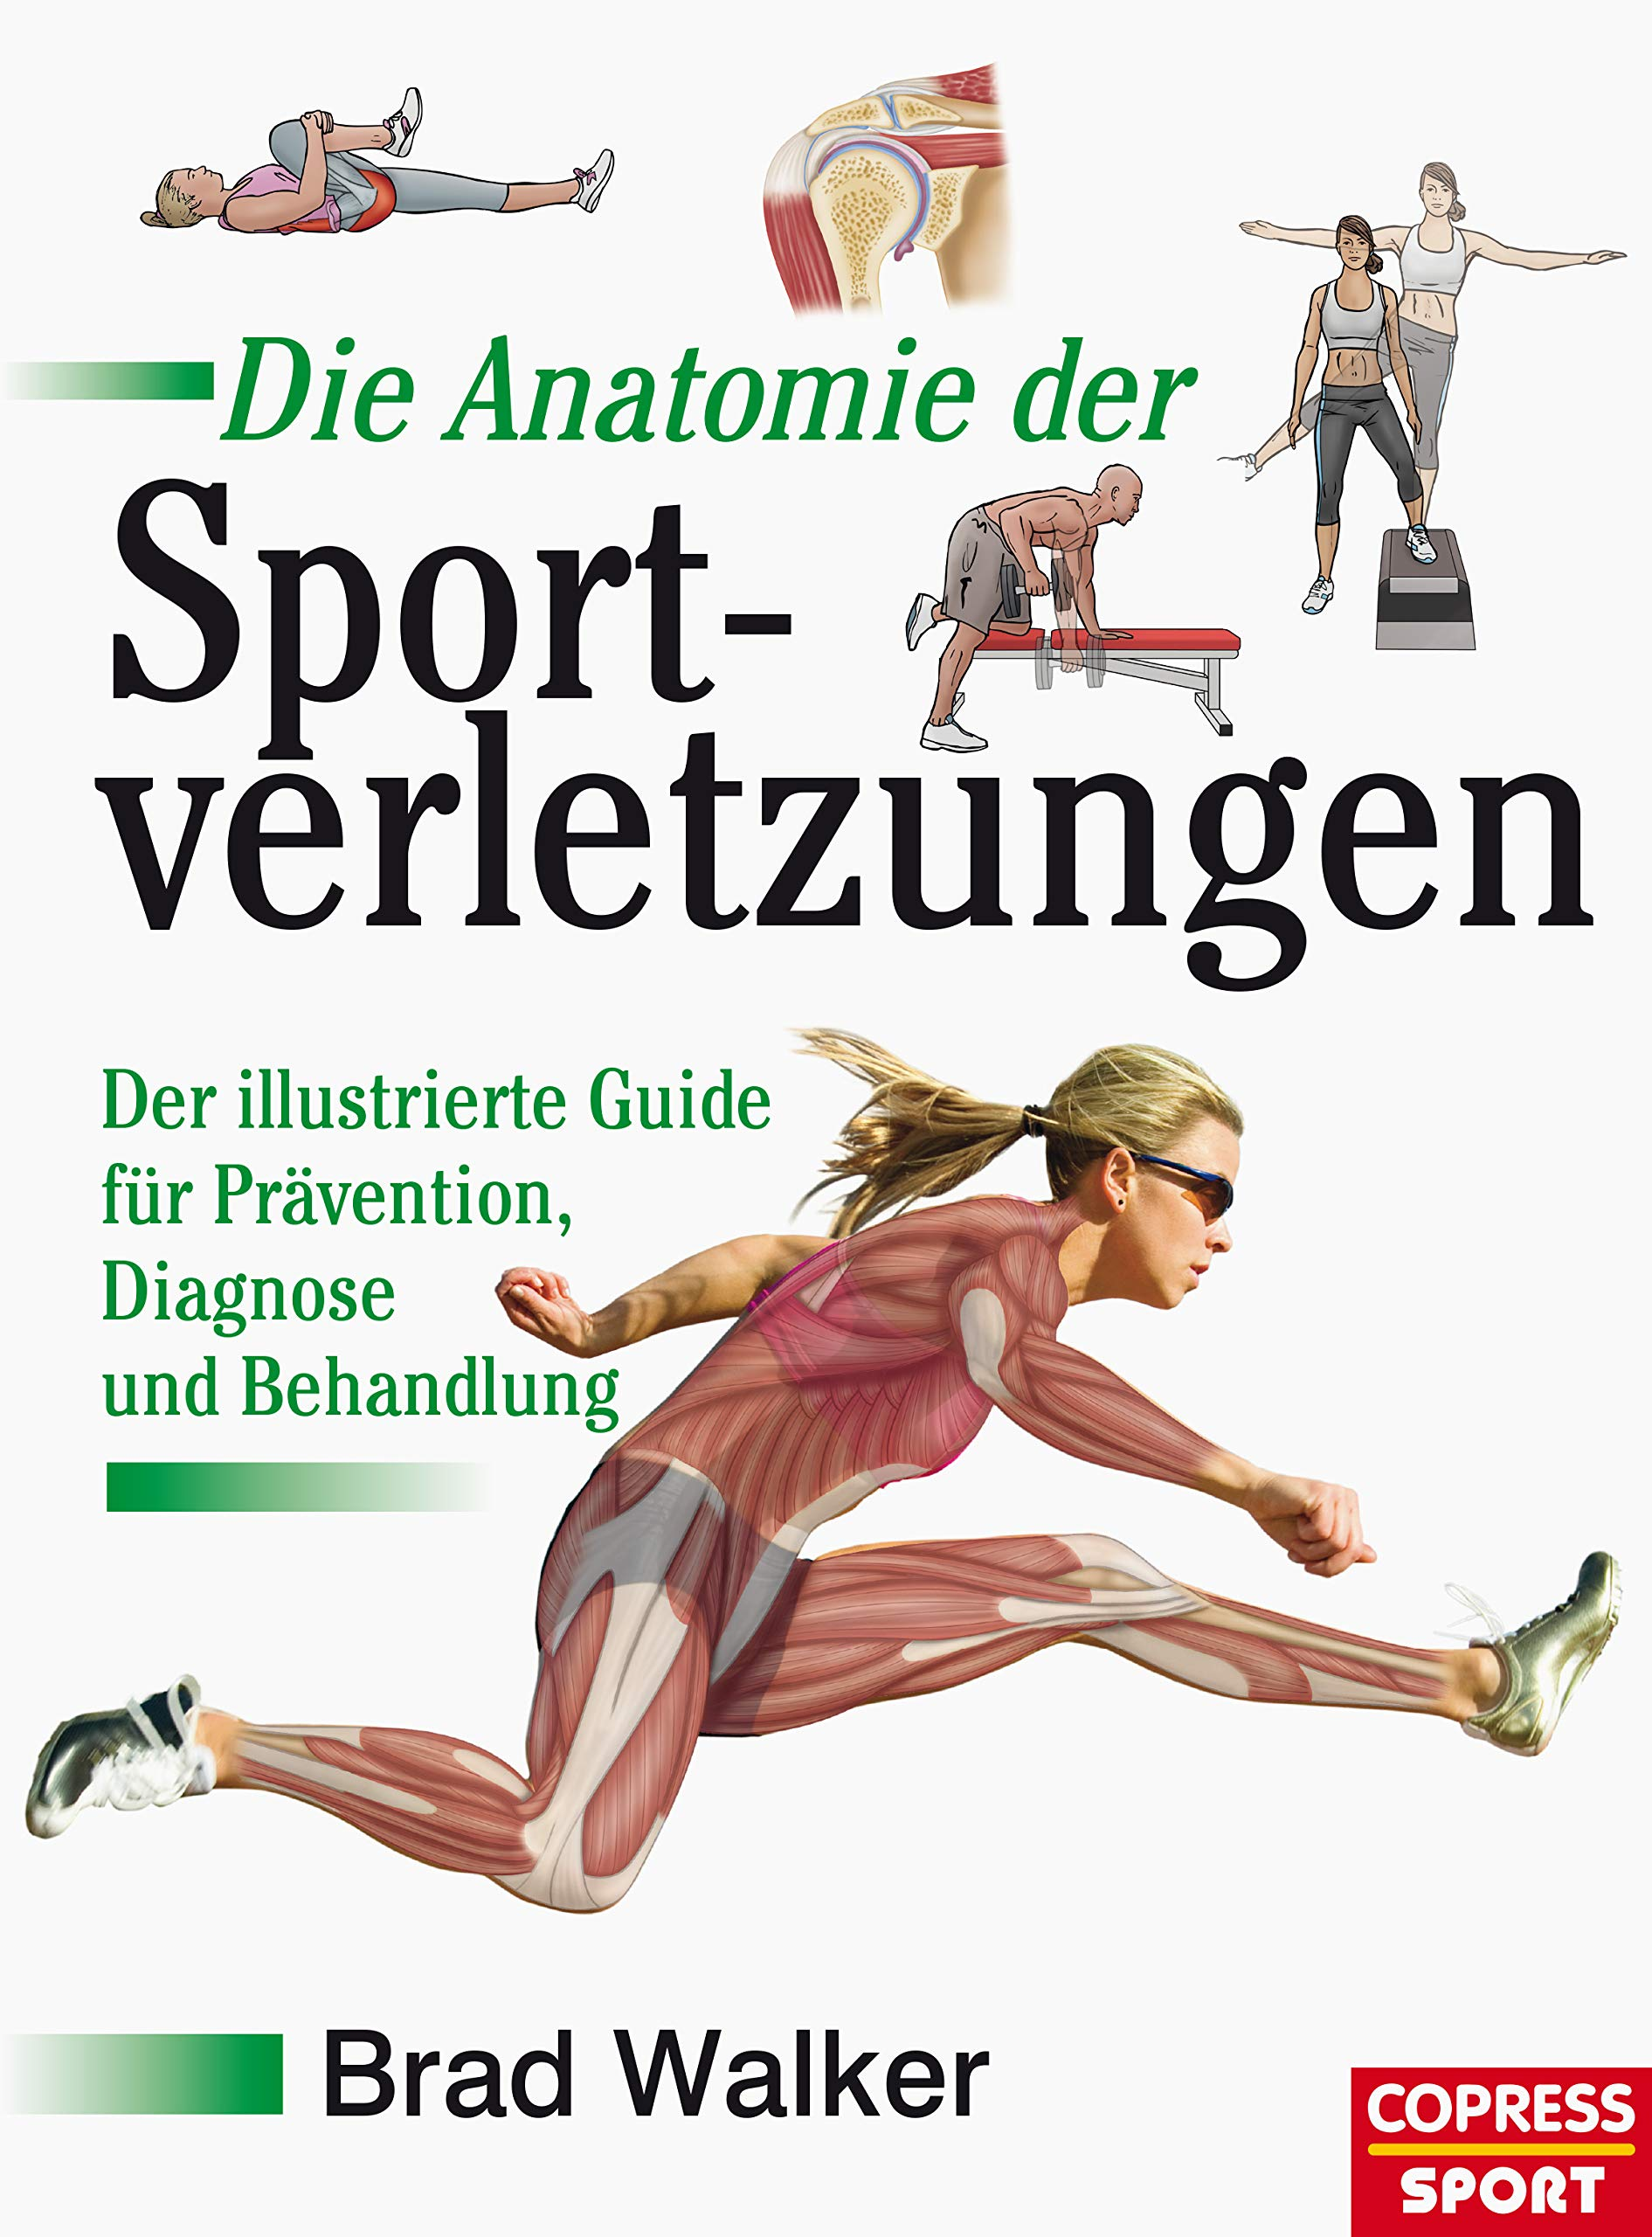 Download Die Anatomie Der Sportverletzungen: Der Illustrierte Guide Für Prävention, Diagnose Und Behandlung (German Edition) 